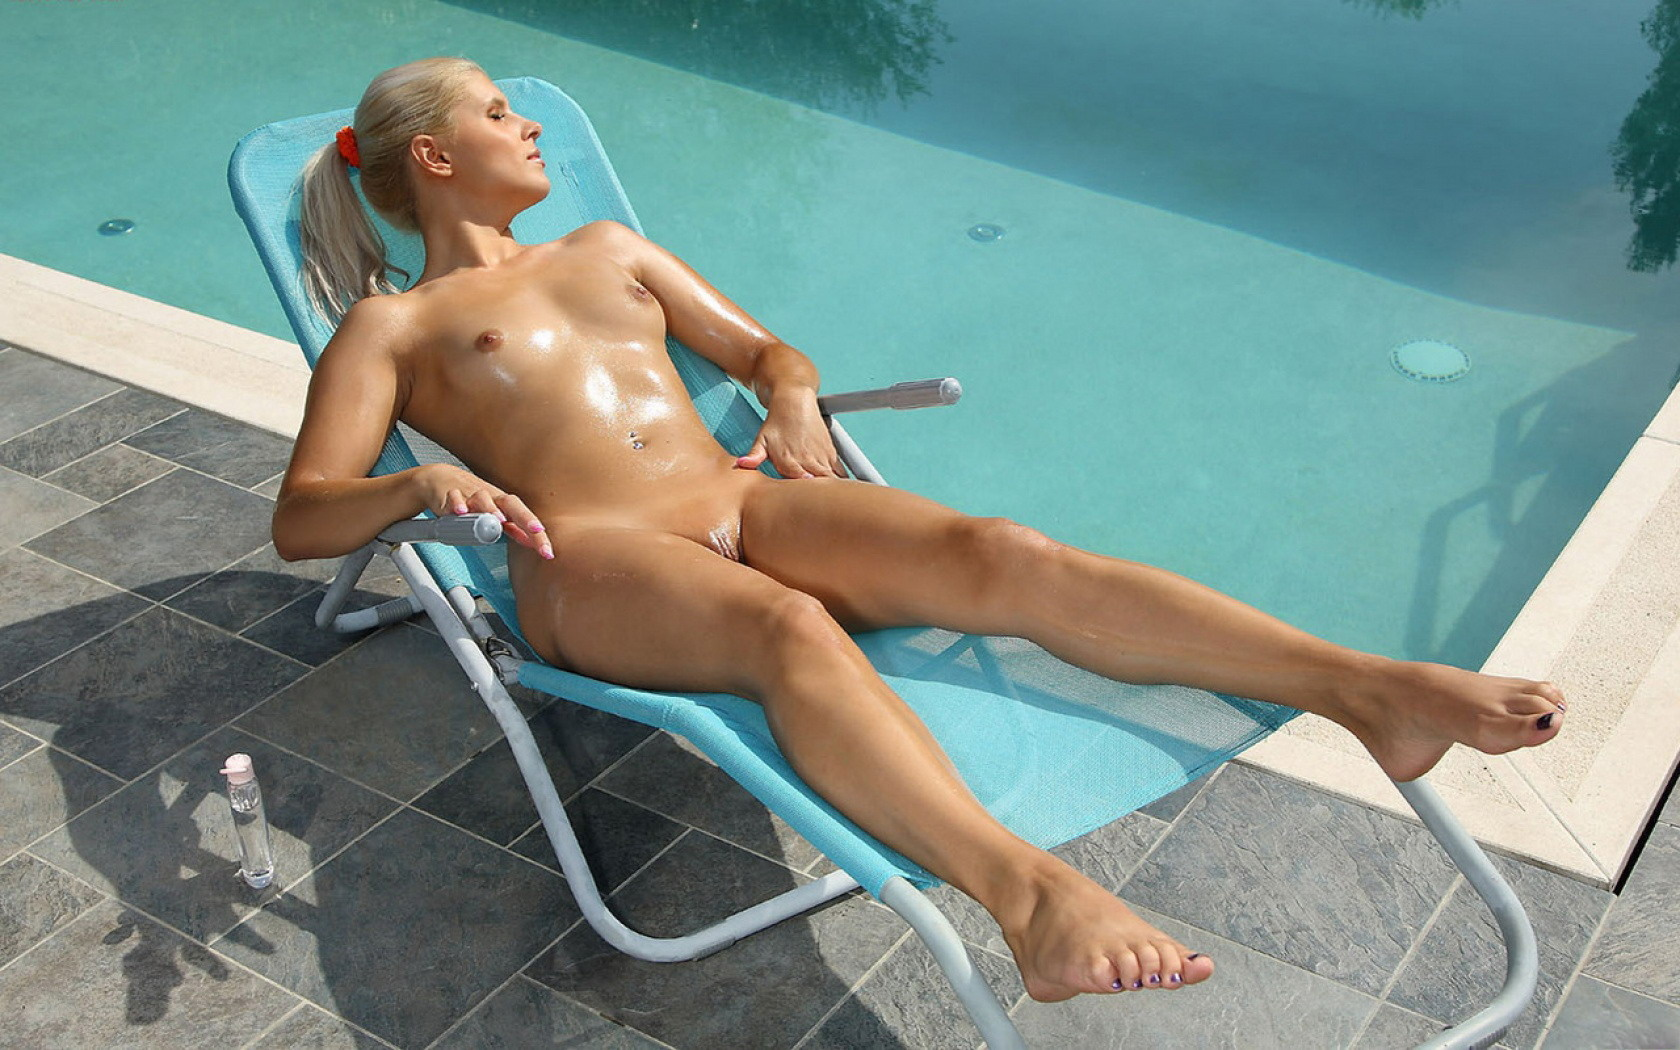 sexy-girl-pees-in-pool